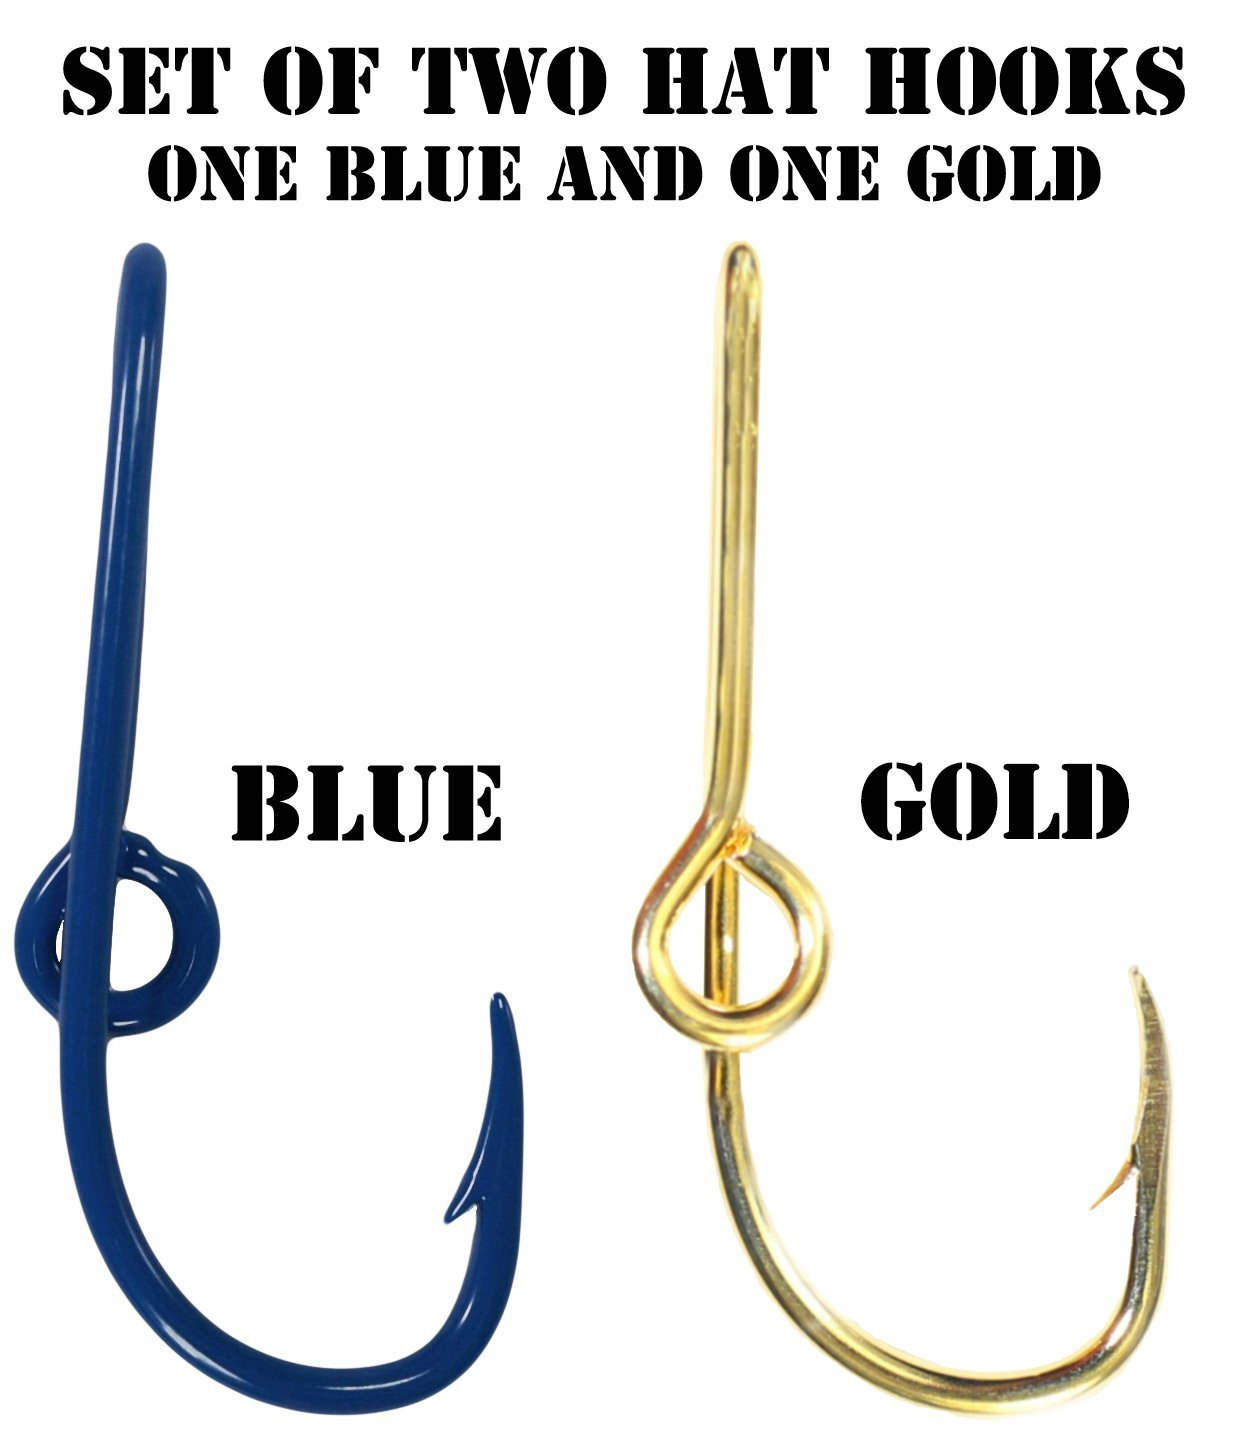 Eagle Claw Hat Fish Hook Set of Two Hat Hooks One Blue Hat Hook and One Gold Fish Hook Plus a FREE Decal Hat Fish Hook for Cap